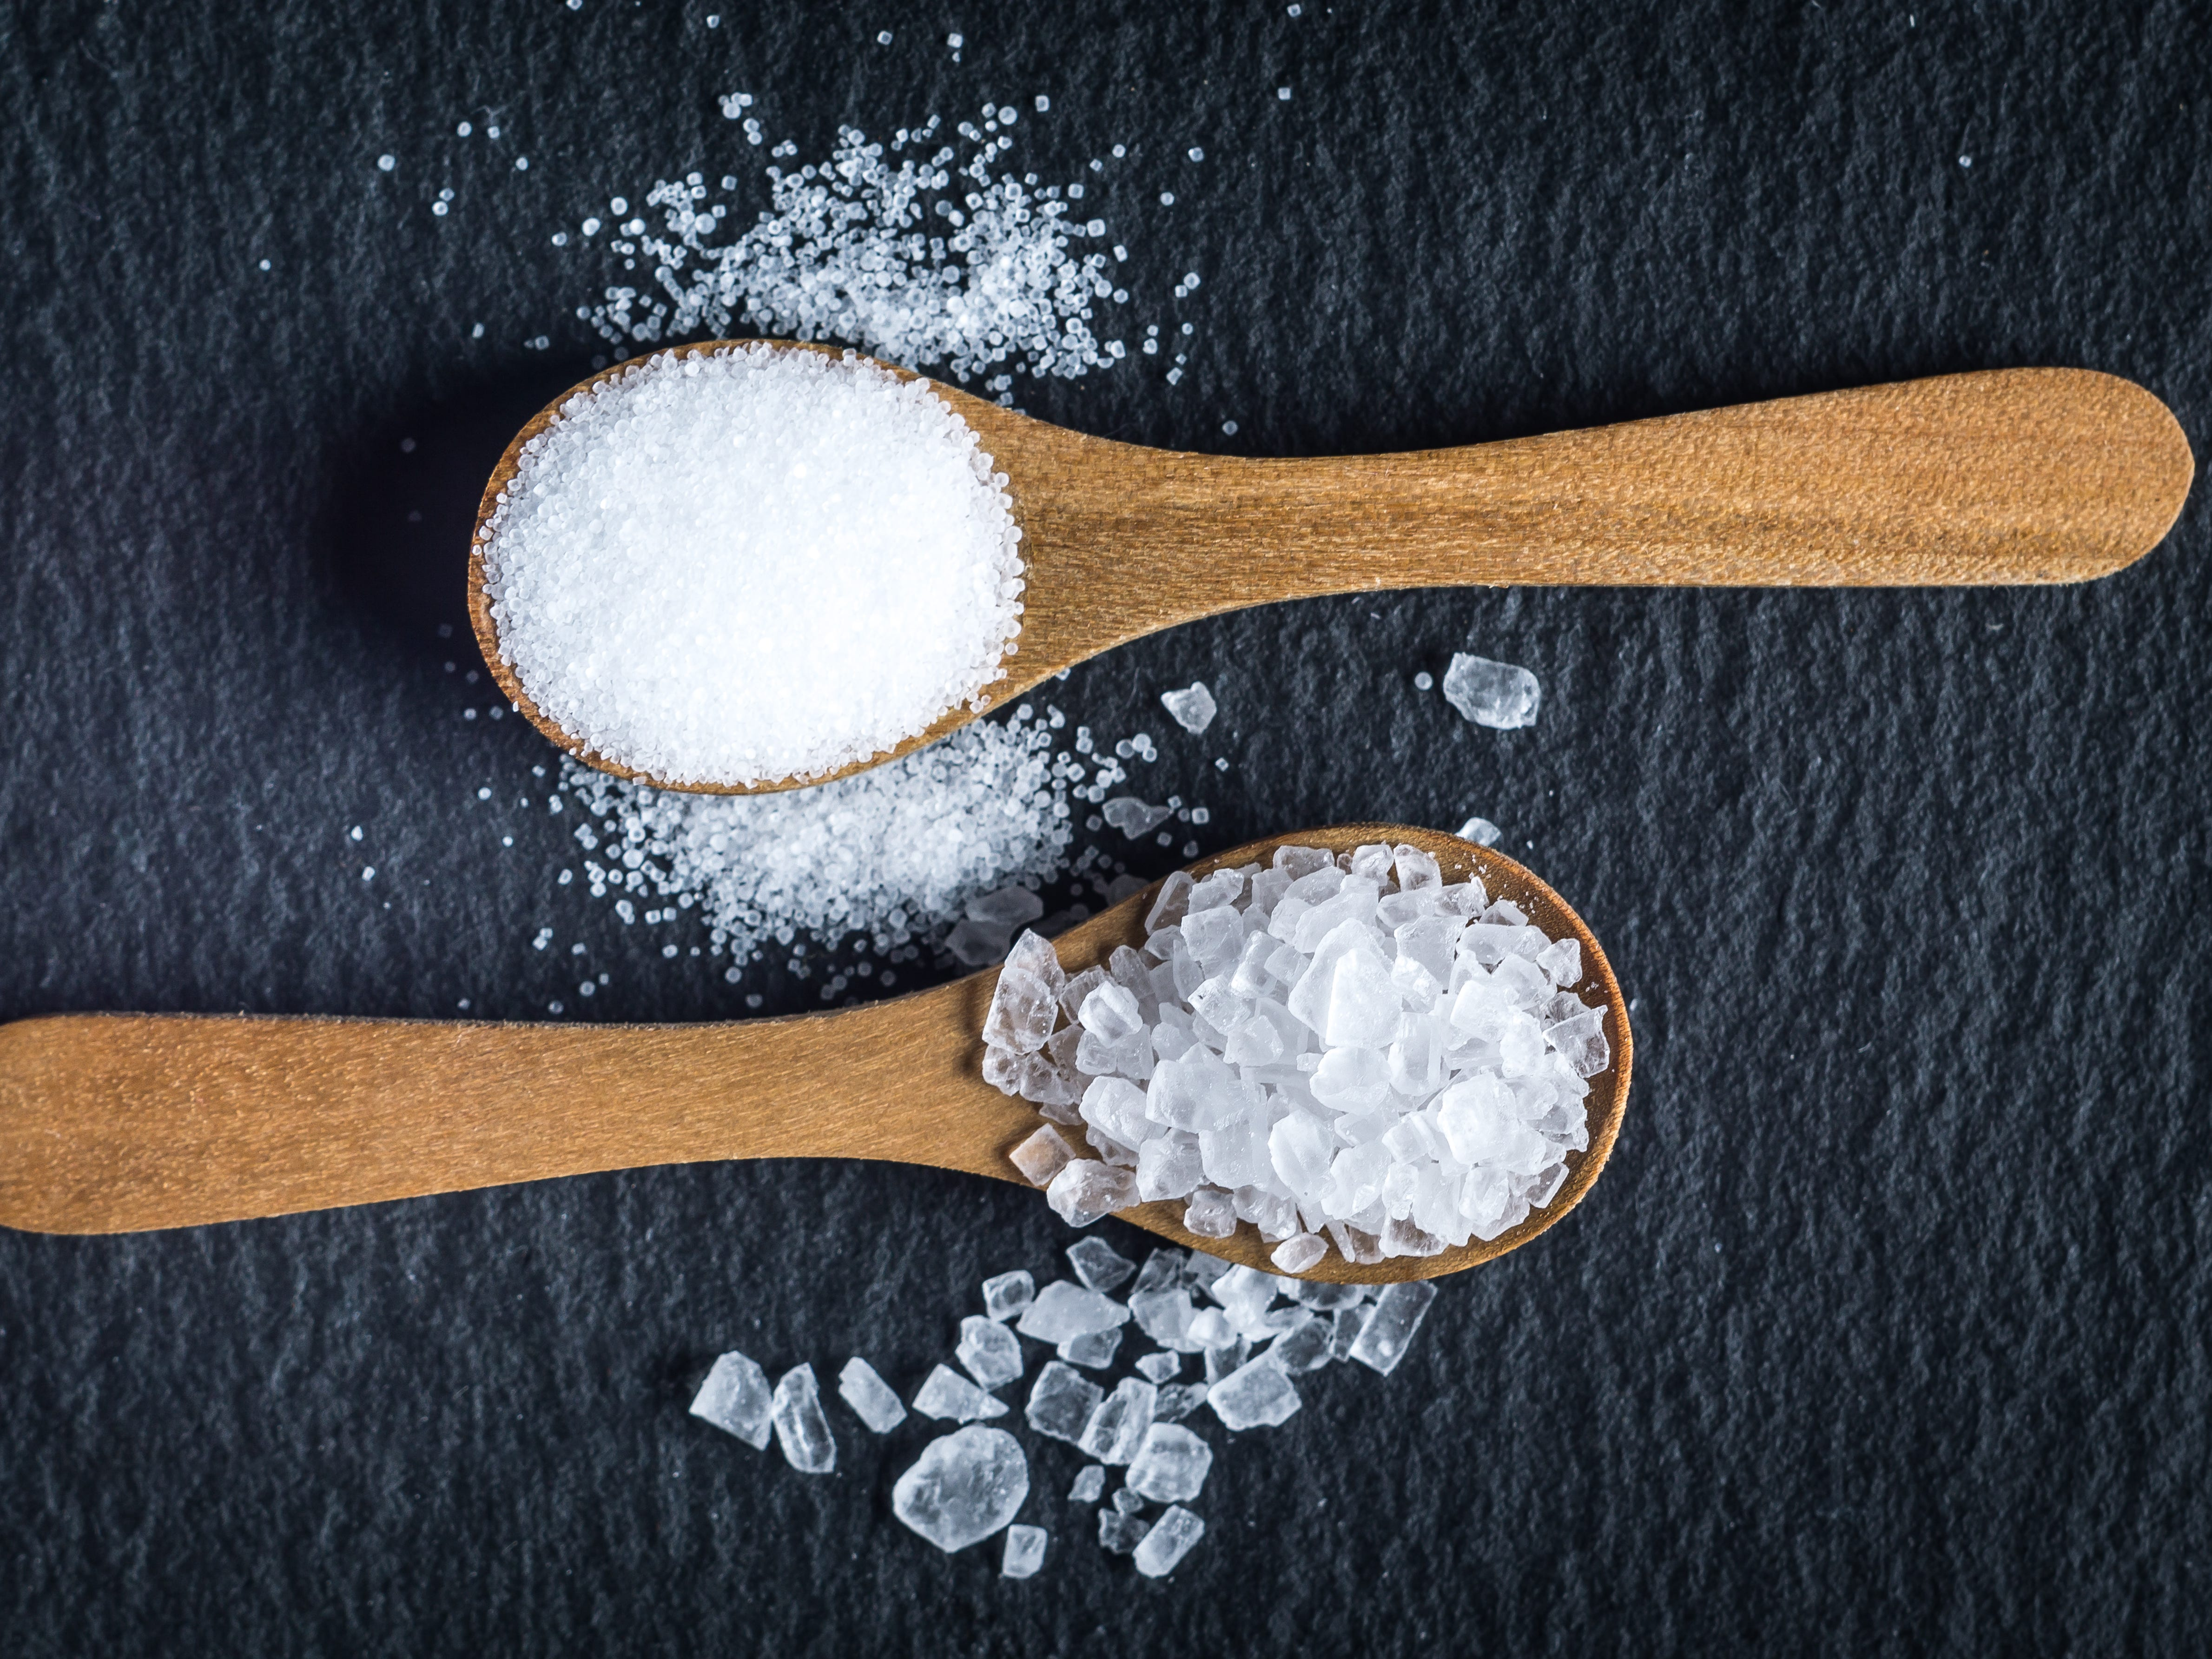 Yuck: There's a 90 percent chance your tasty sea salt contains plastic, study says